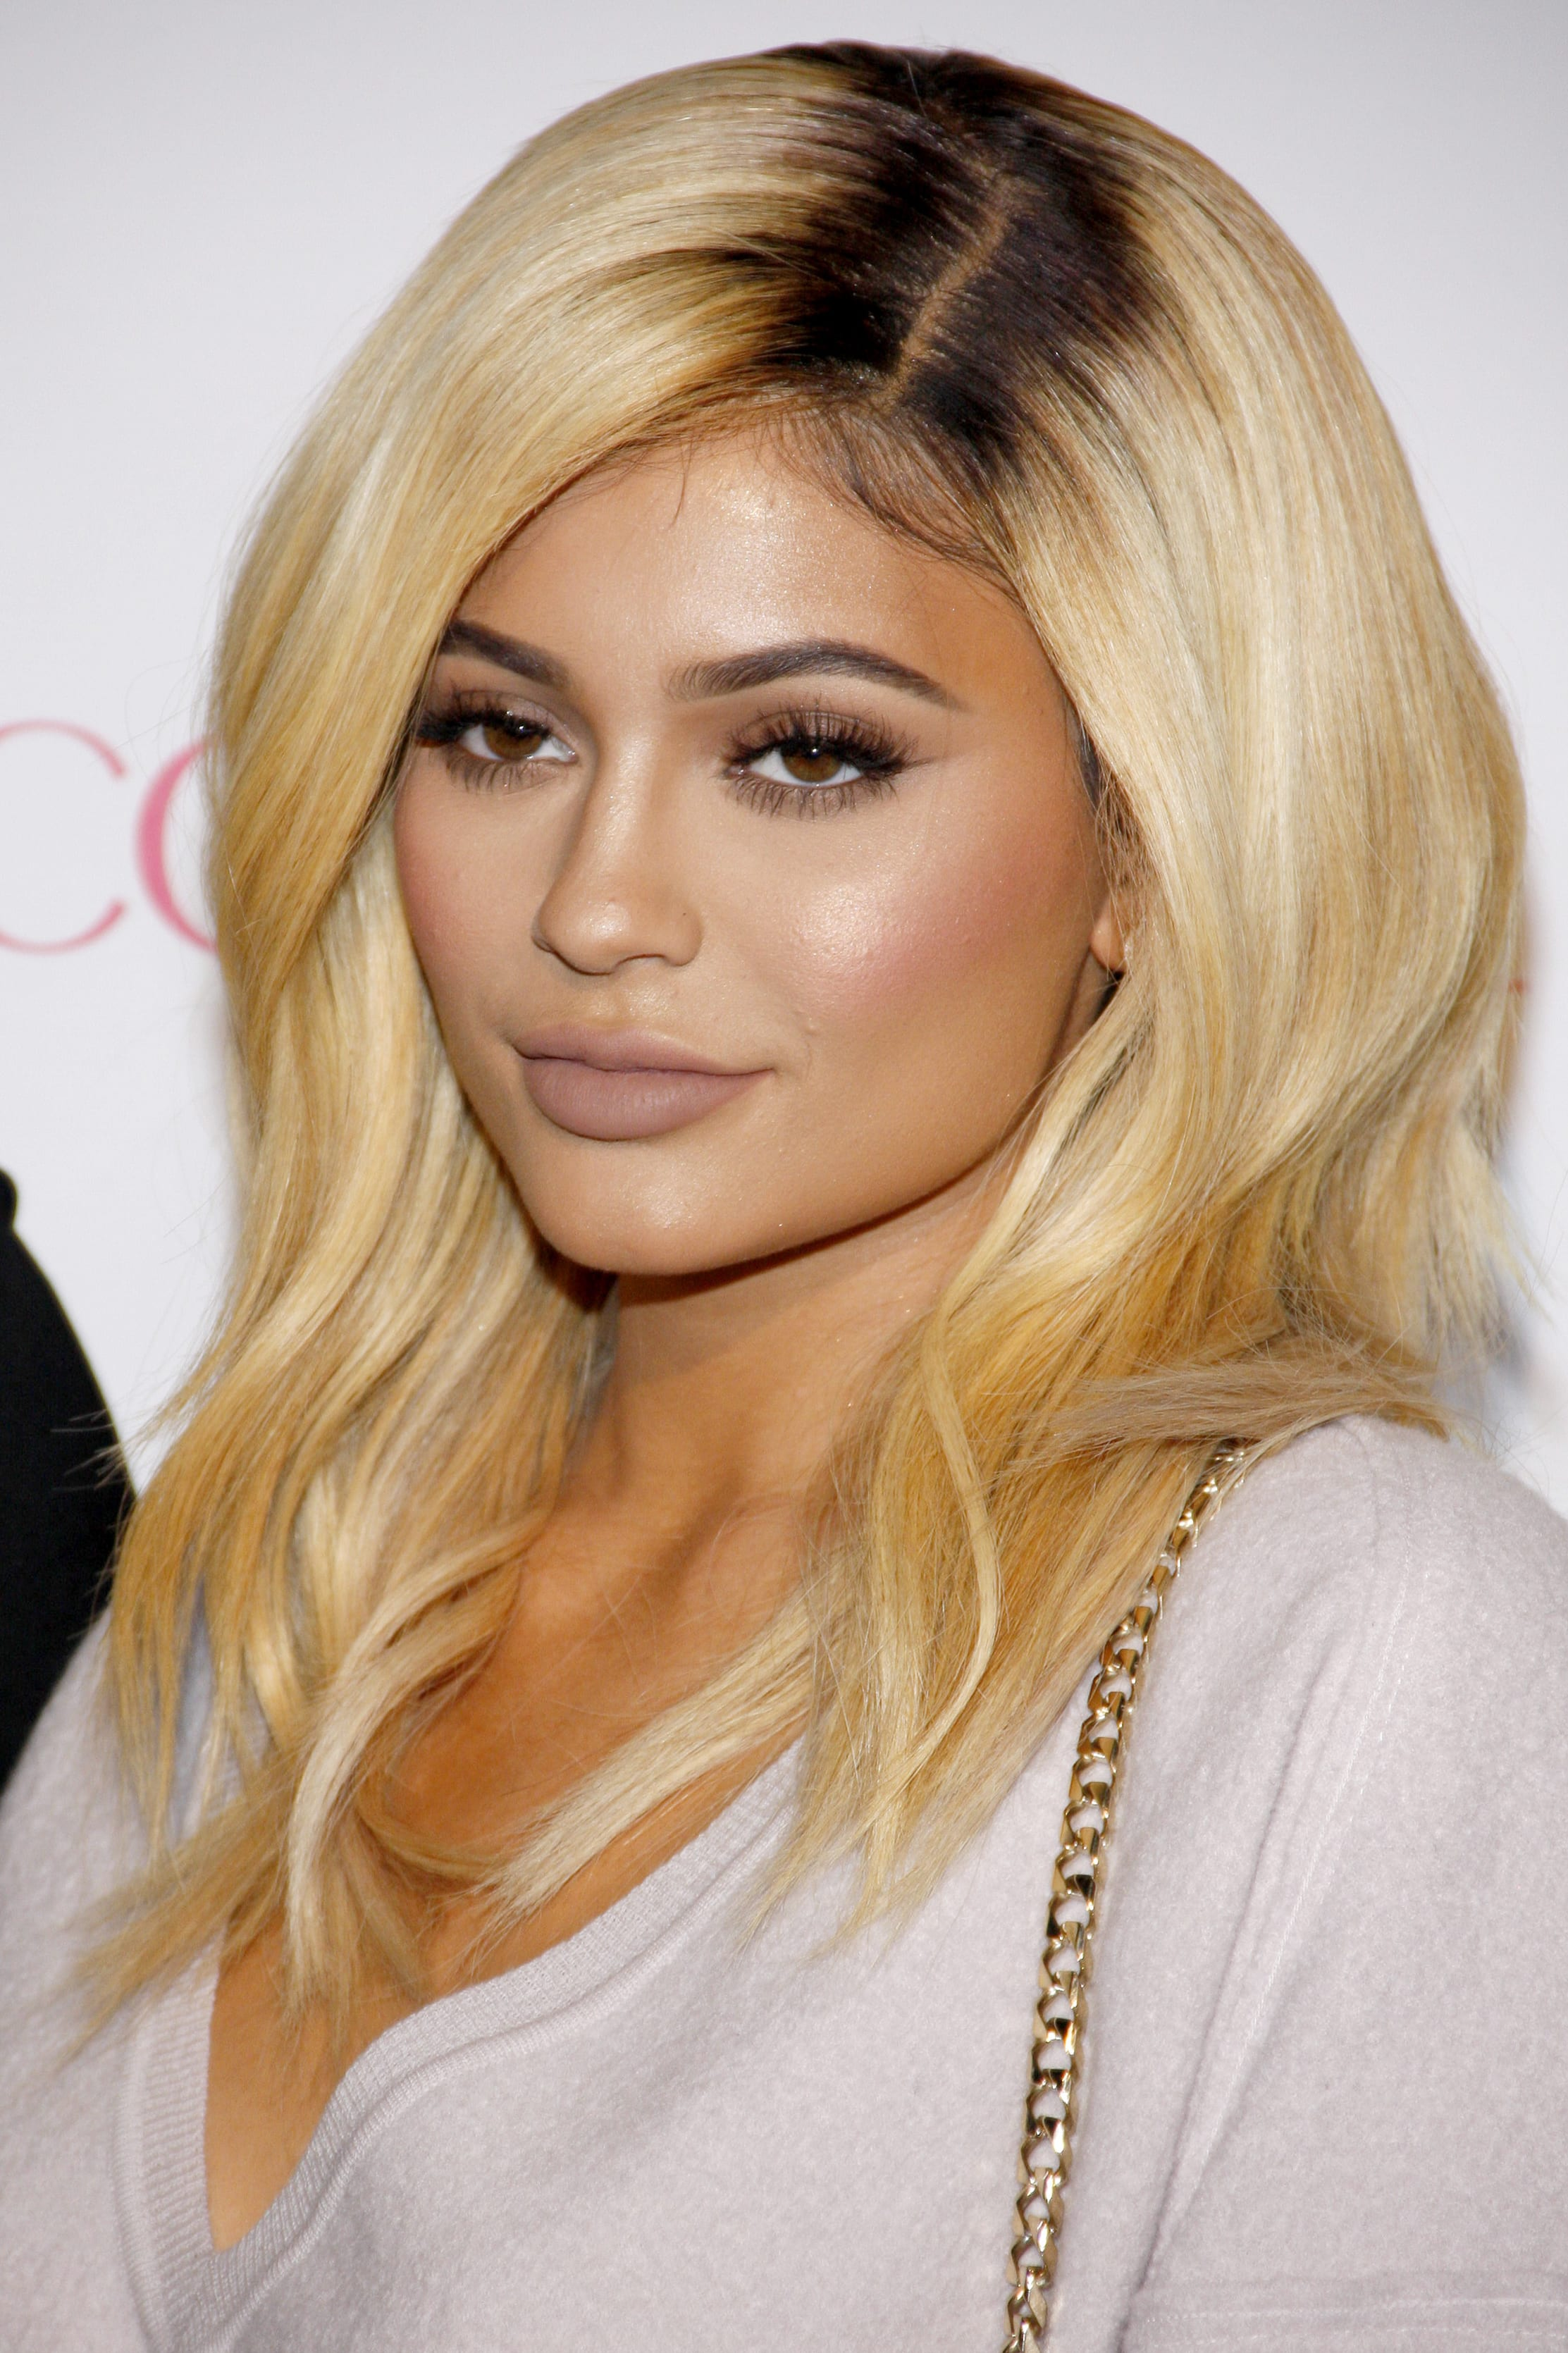 Kylie Jenner's Barbie Blonde with Dark Roots